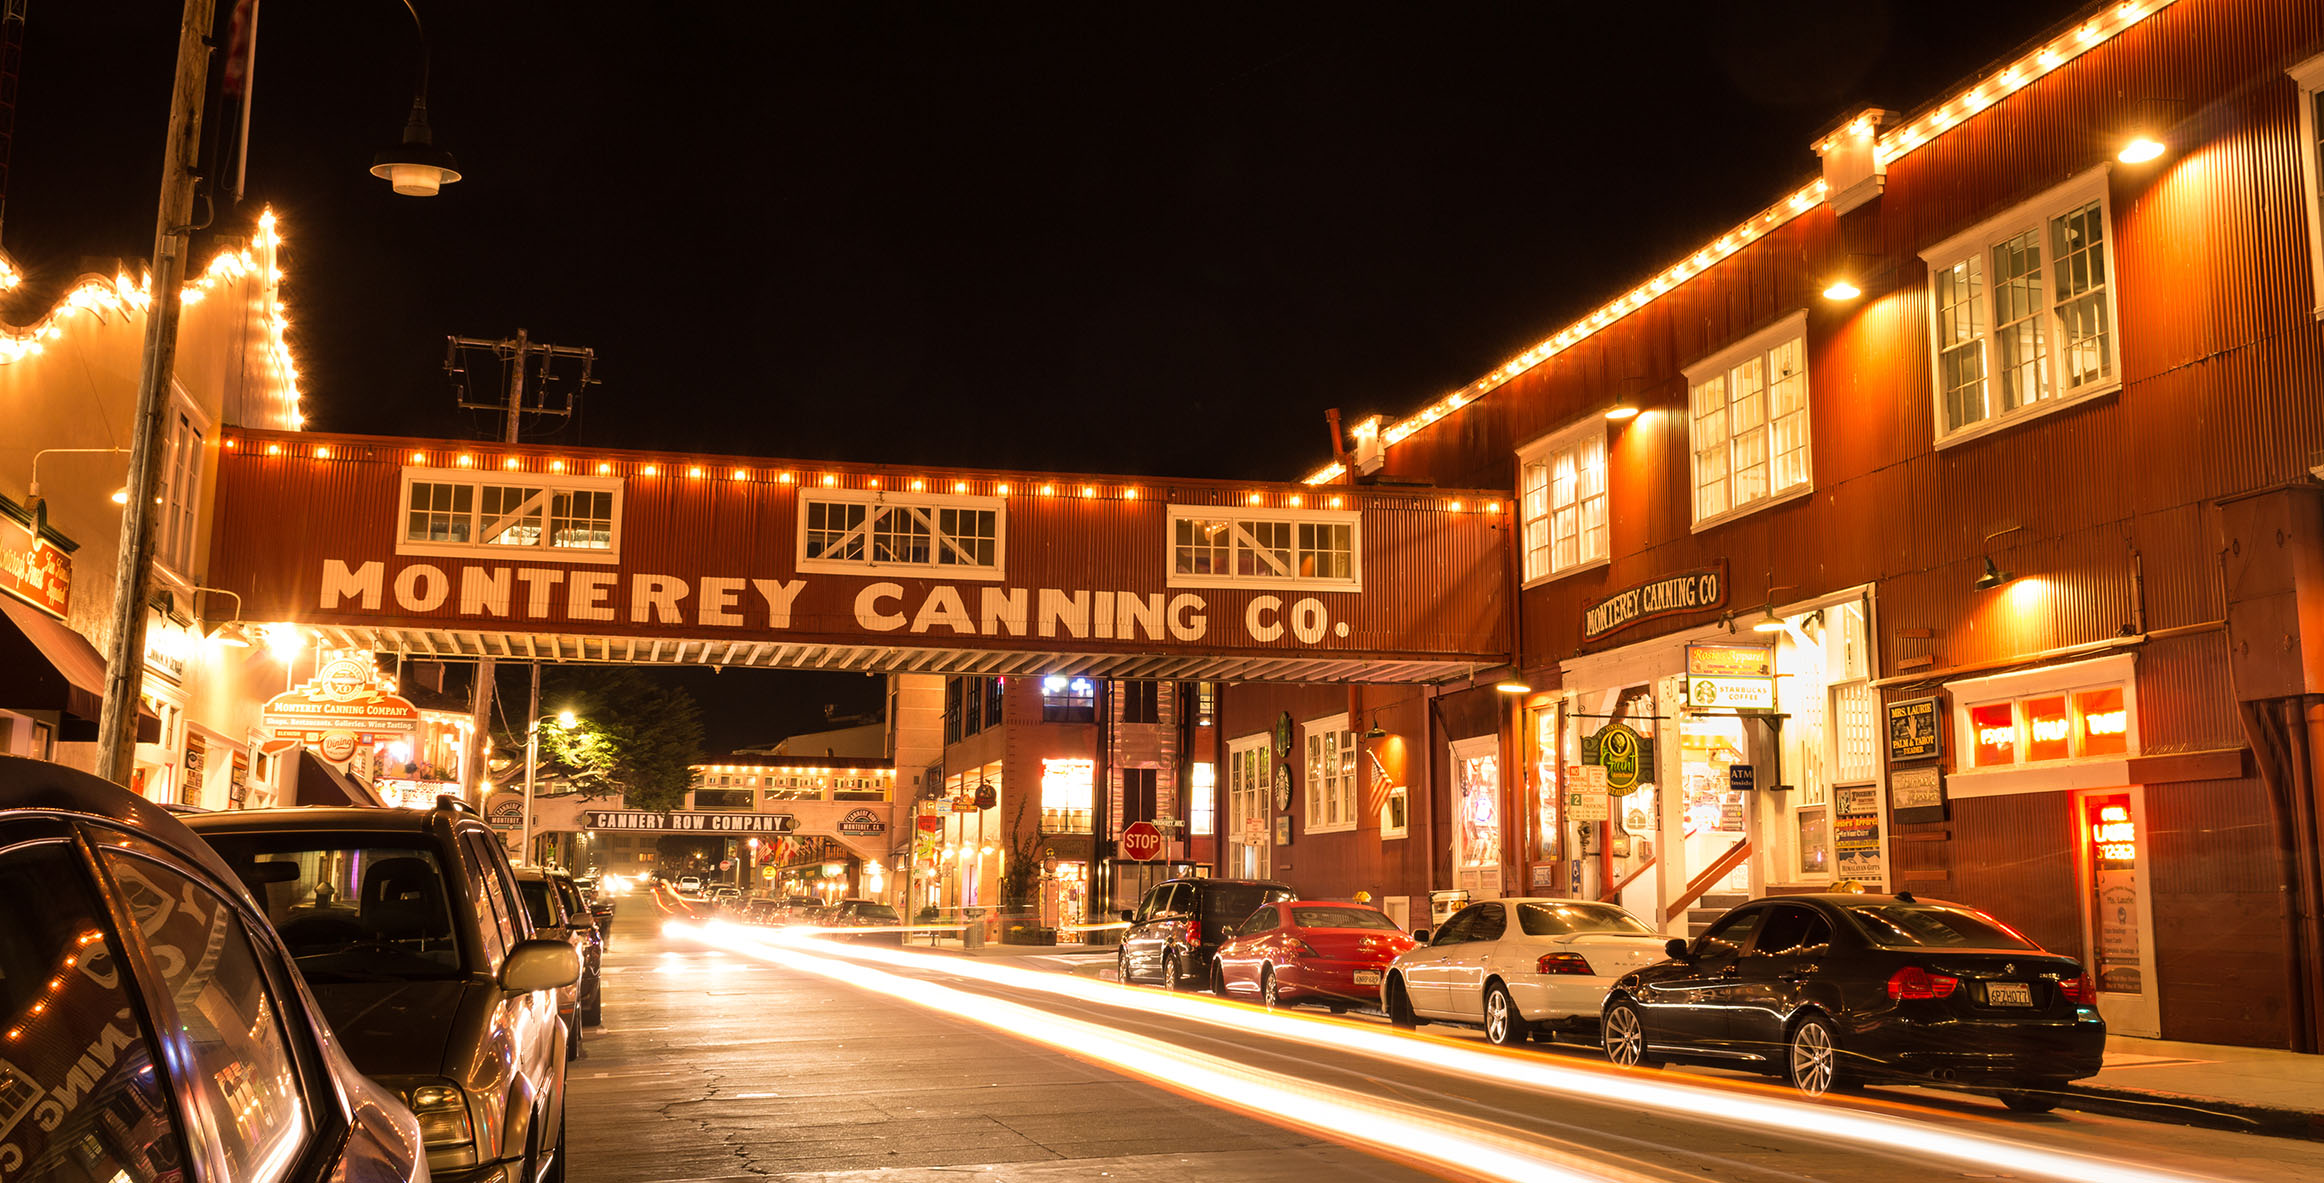 ENJOY QUICK ACCESS TO MONTEREY'S TOP ATTRACTIONS AND ENTERTAINMENT